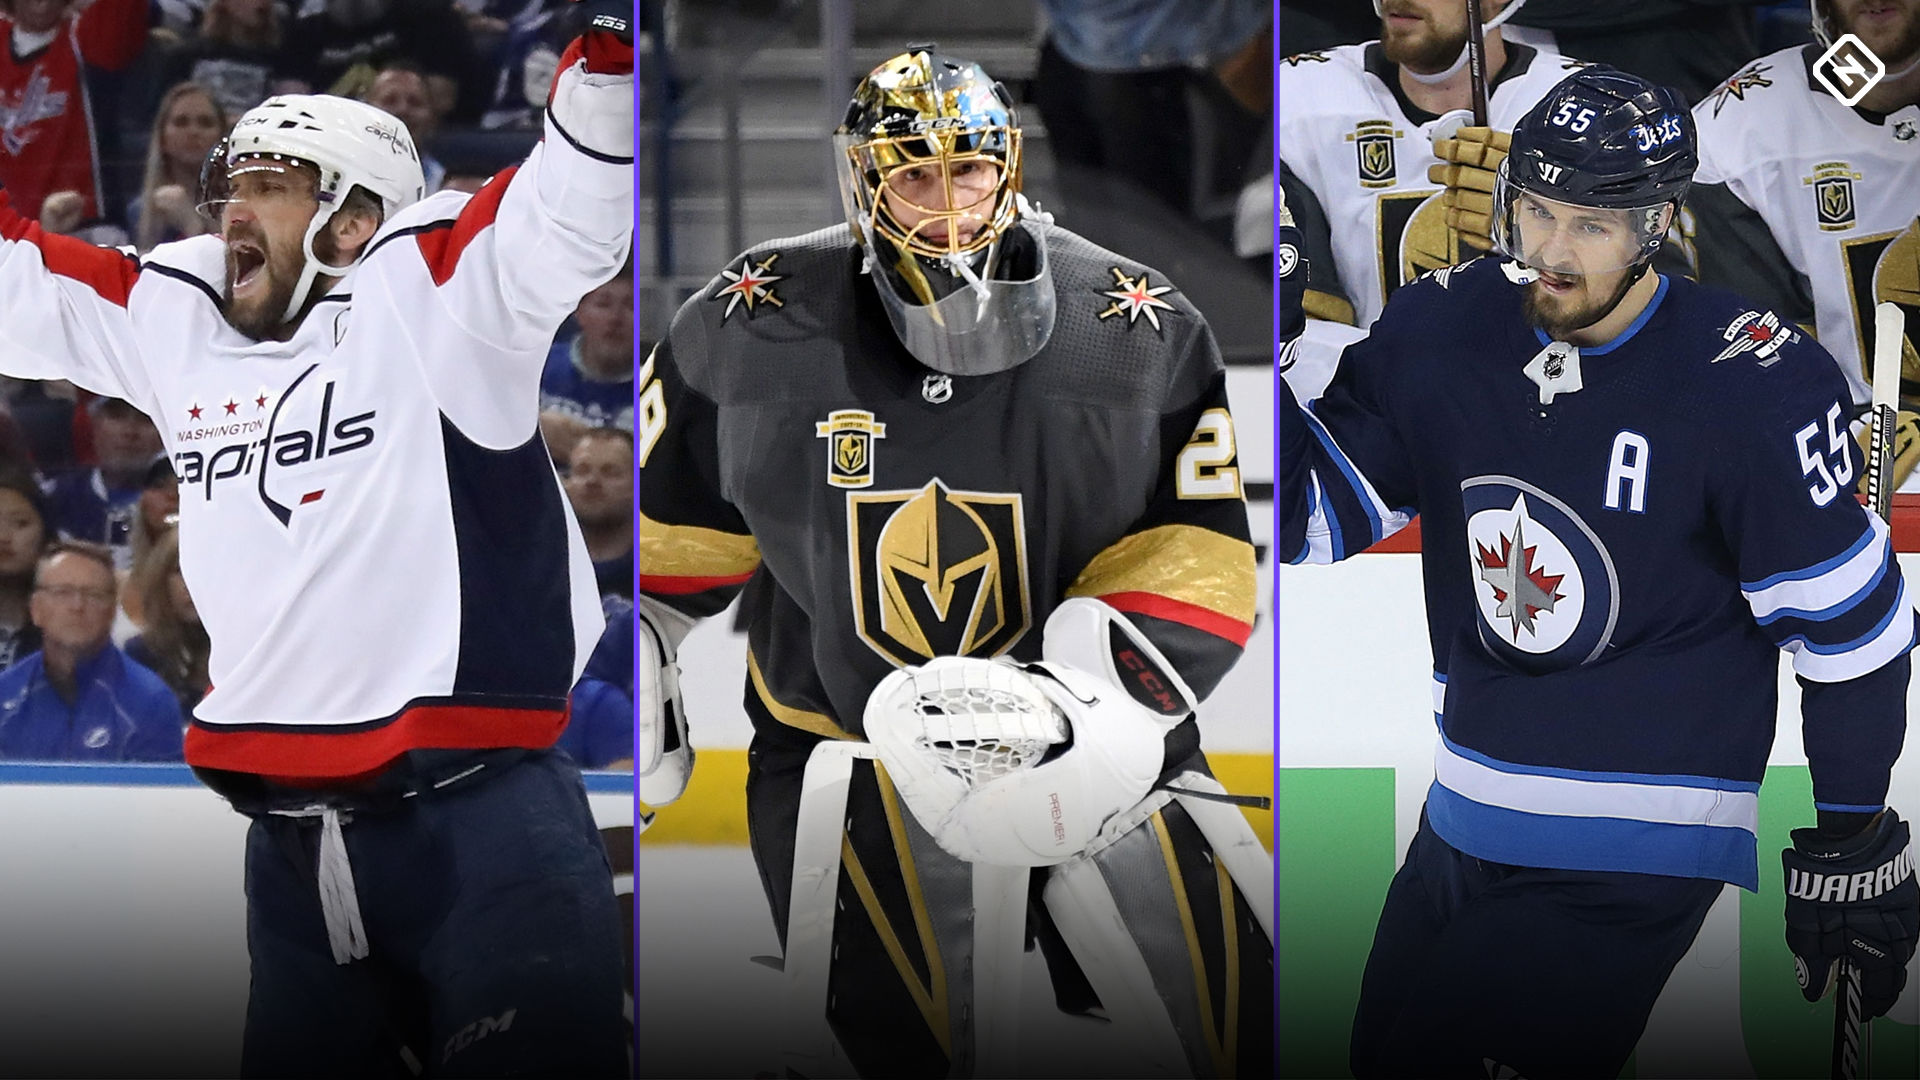 Conn Smythe power rankings: Top 10 candidates for NHL's playoff MVP so far